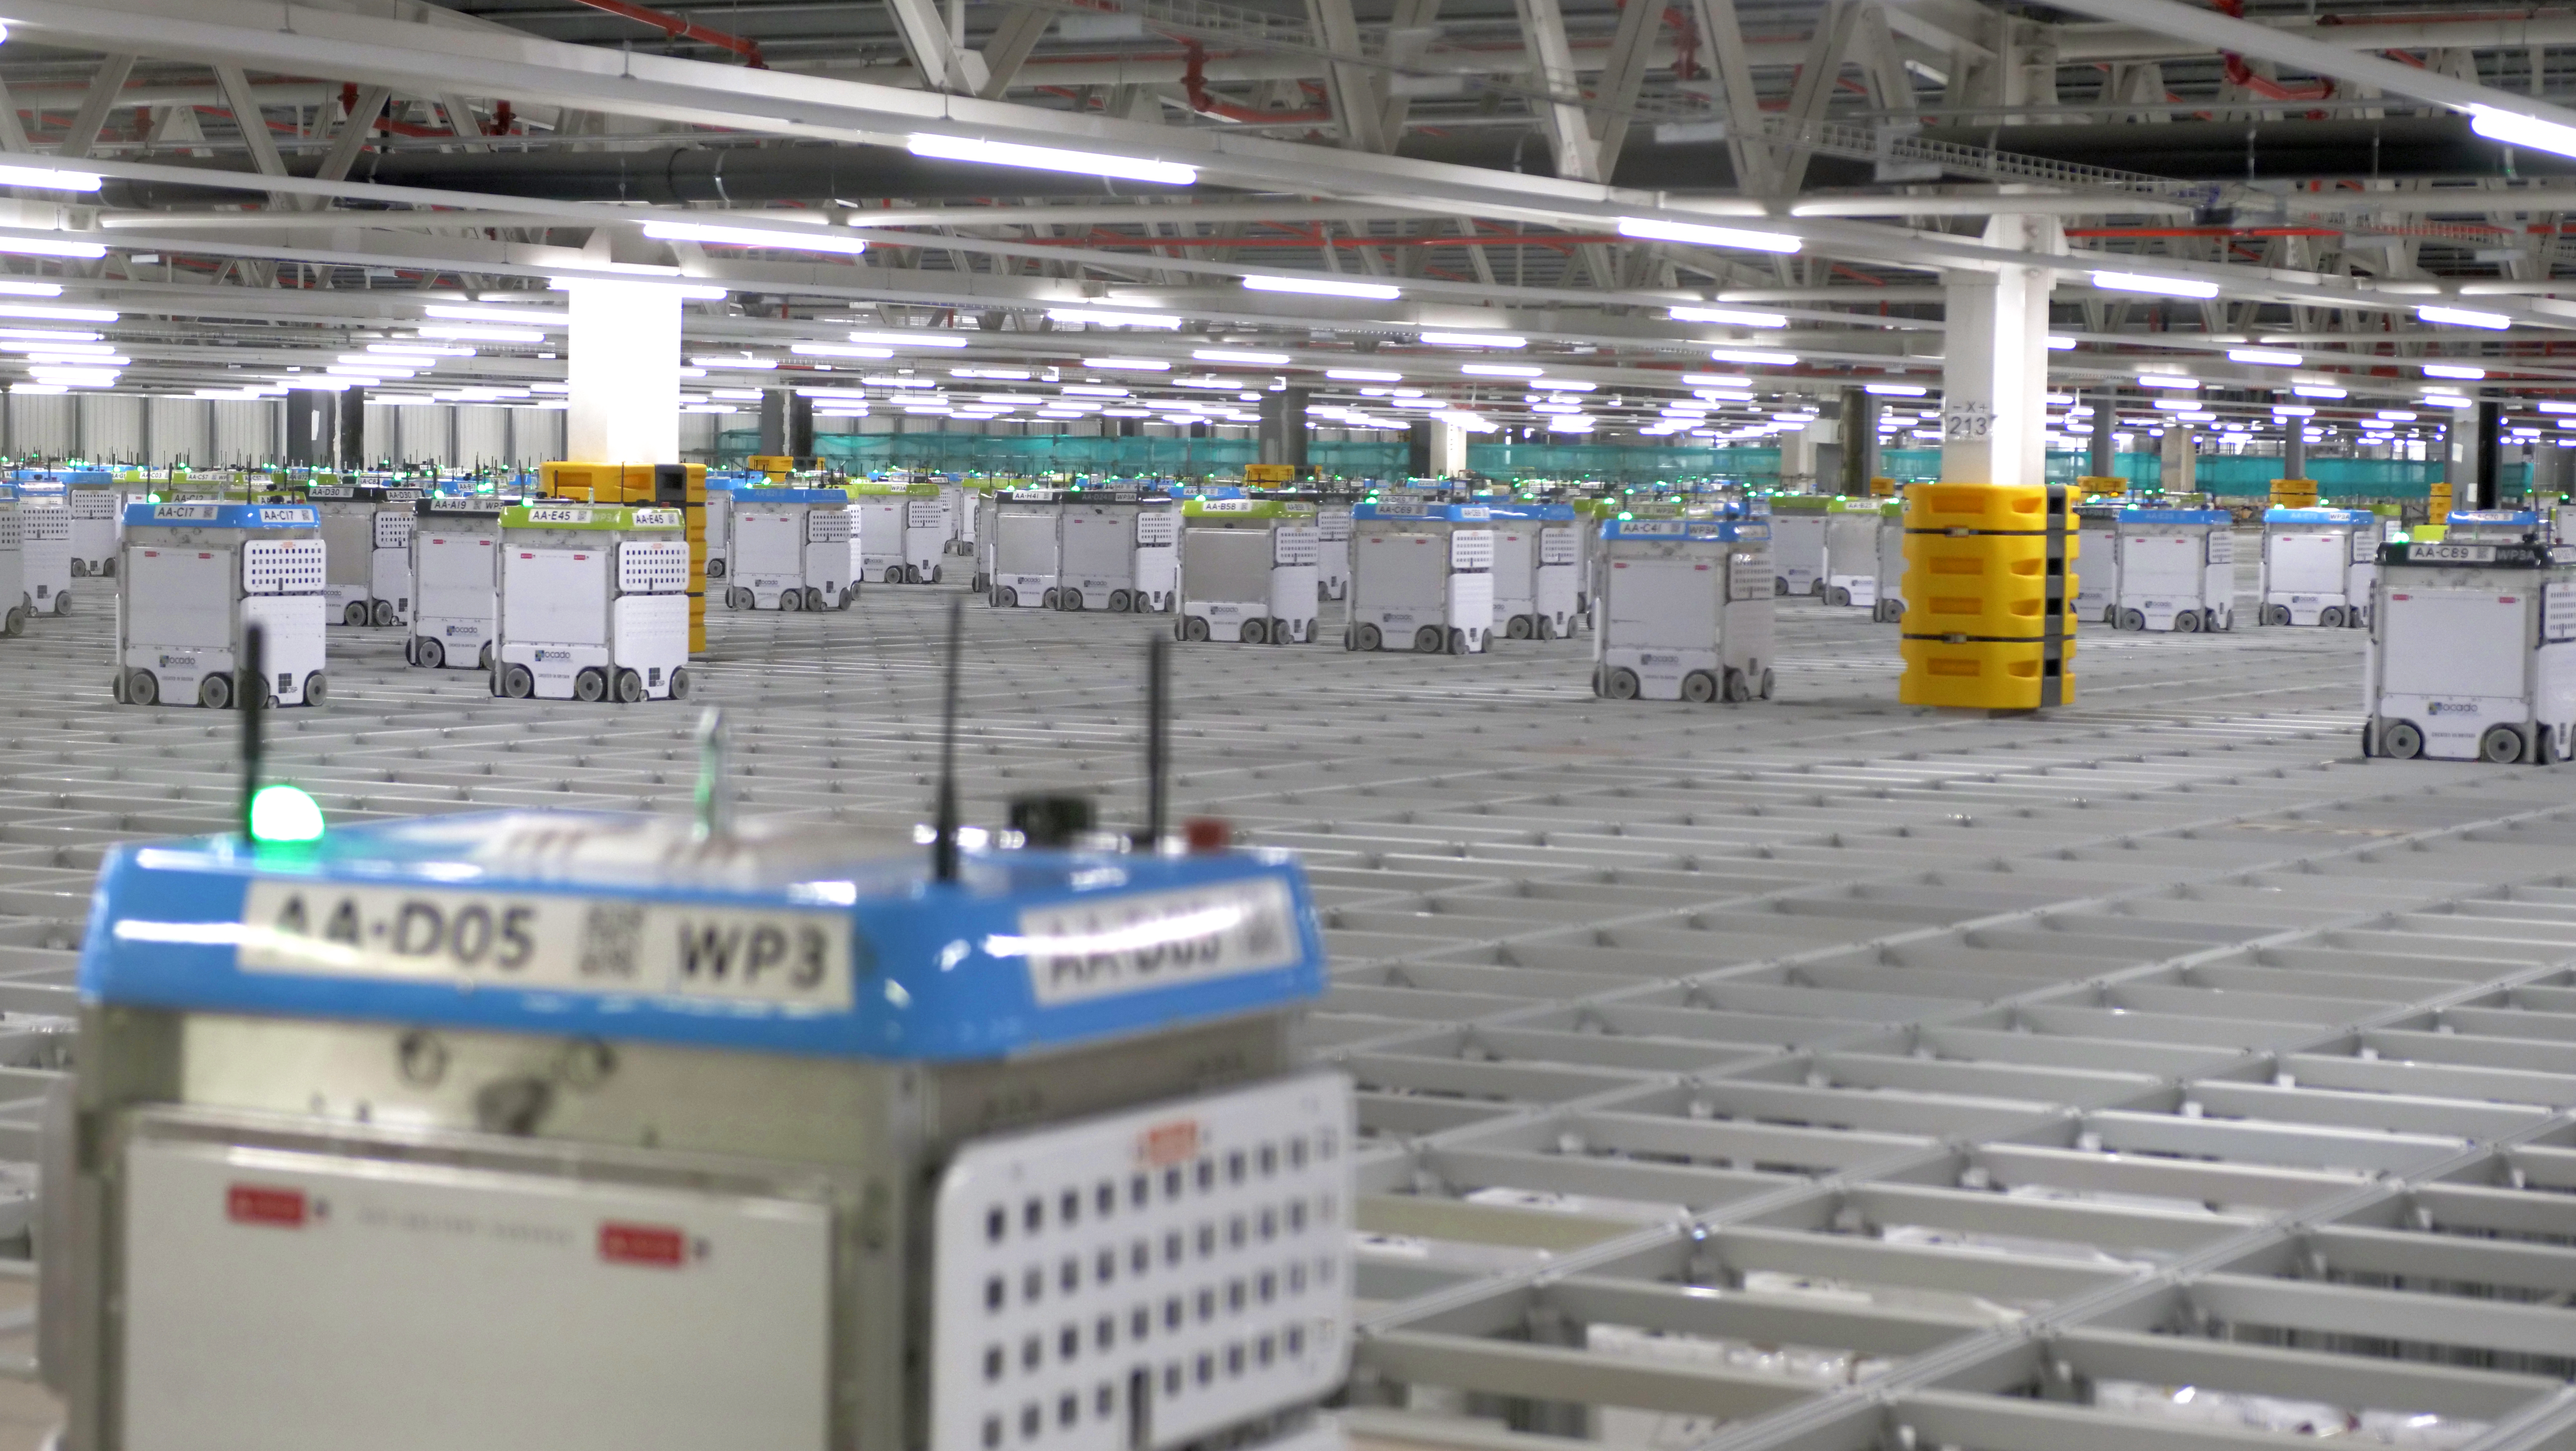 Watch Ocado robots pick groceries in a supermarket warehouse